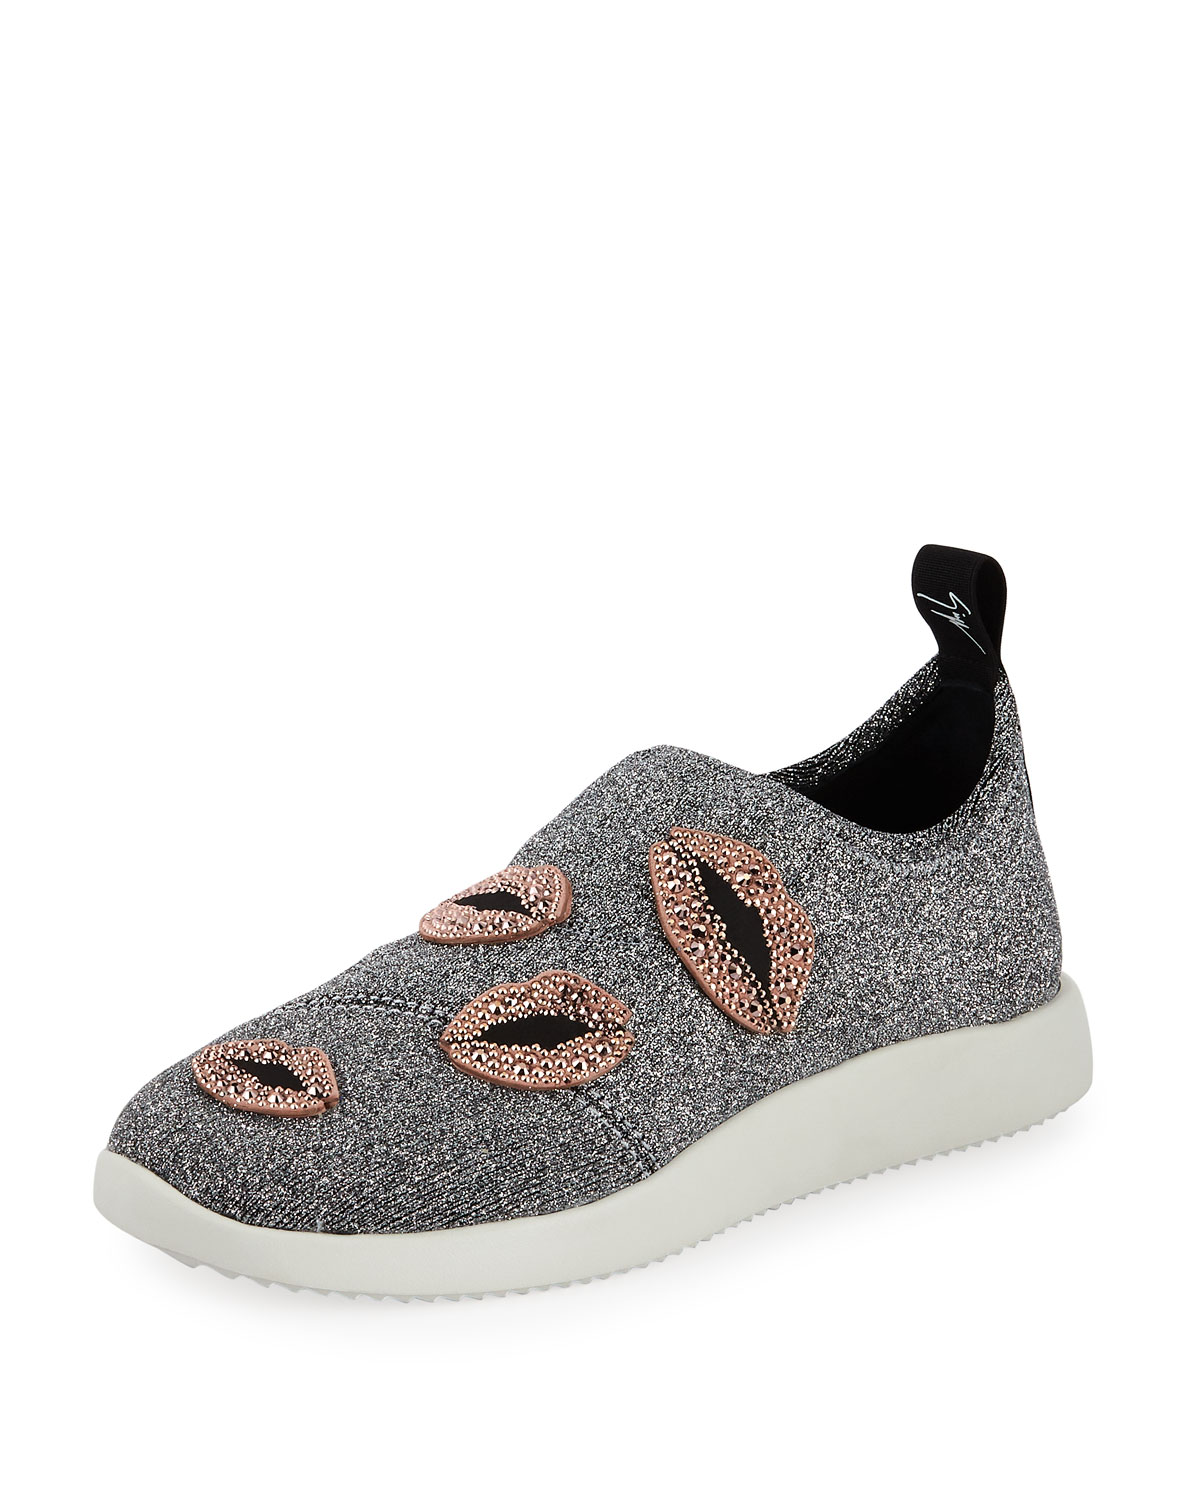 Giuseppe Zanotti Glitter Stretch Trainer Lips Sneakers with Lips Trainer dc4a2f